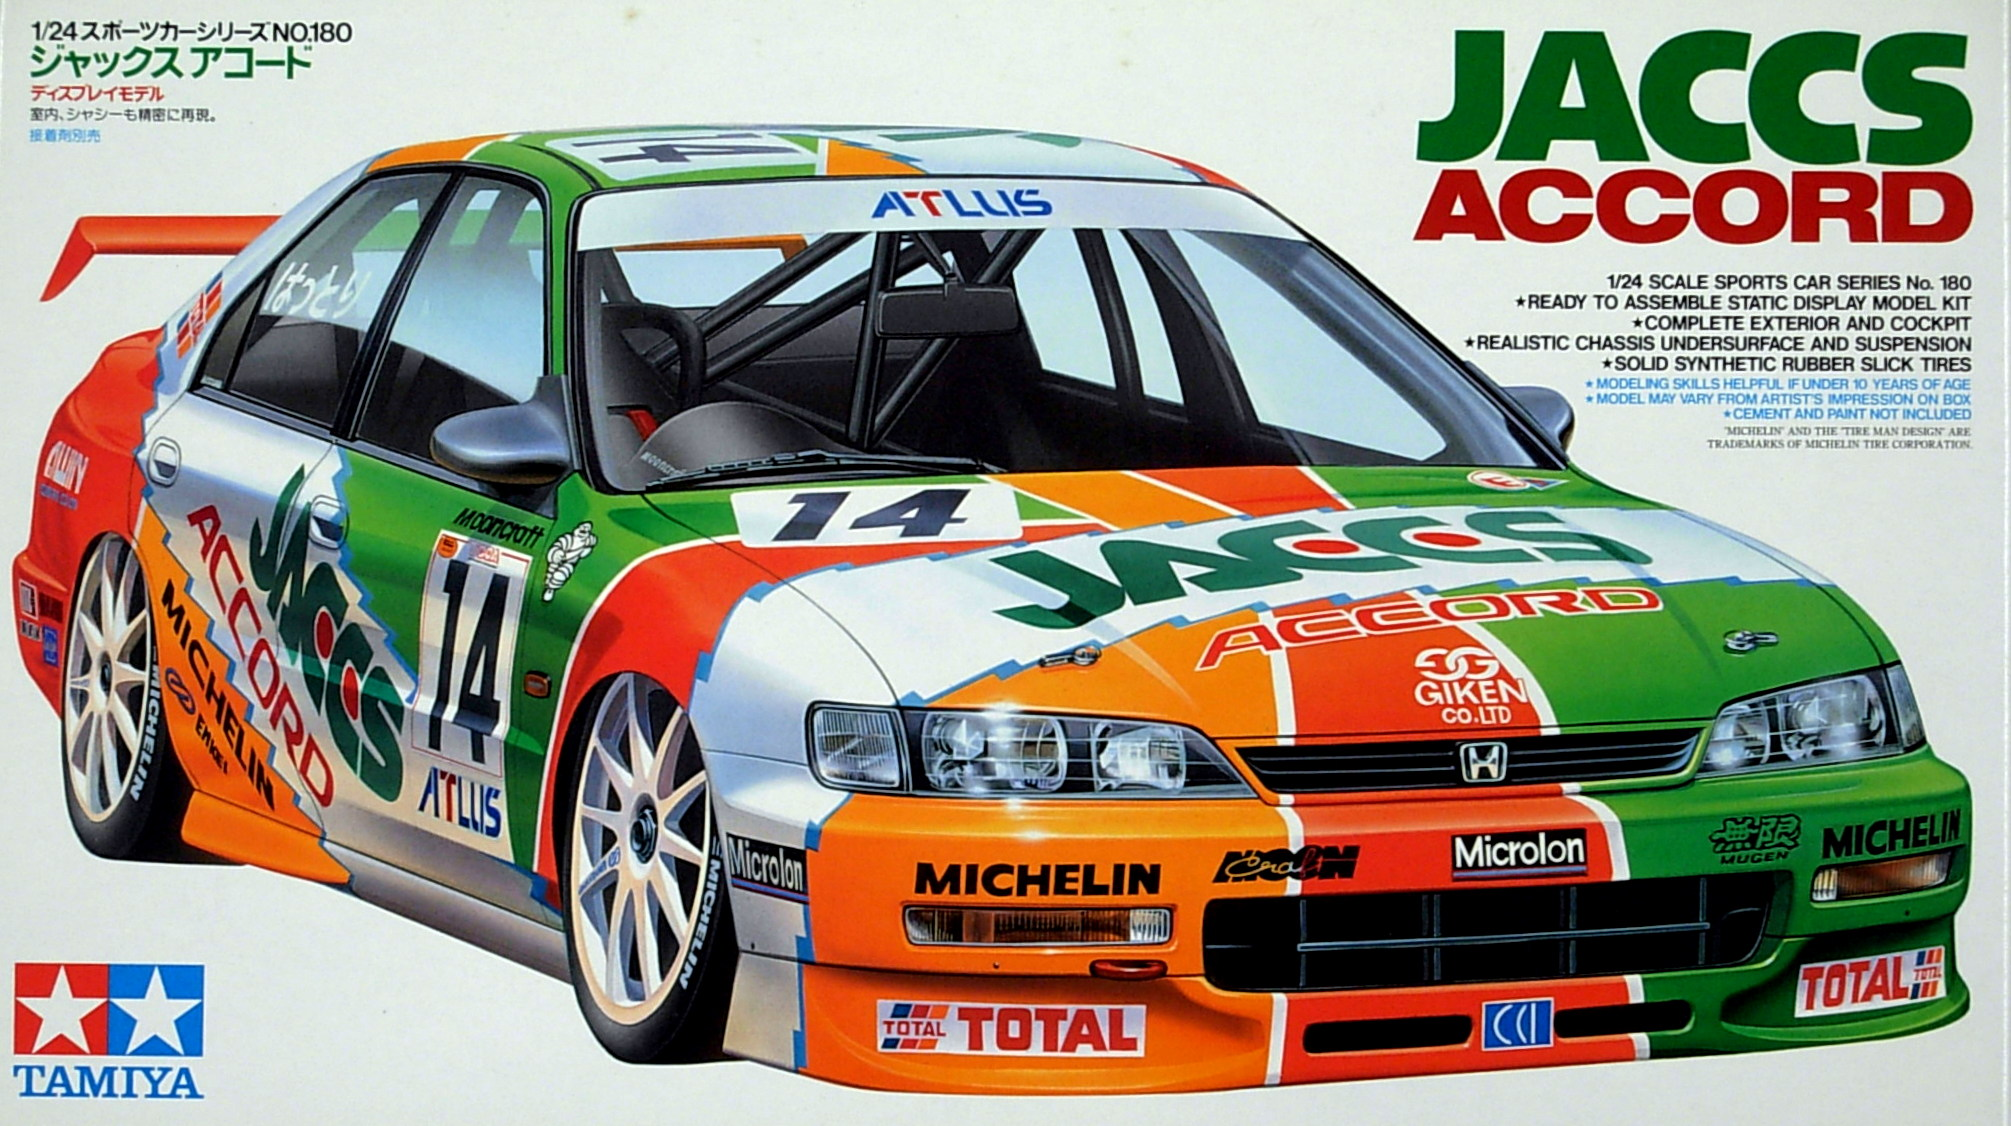 JACCS Honda Accord